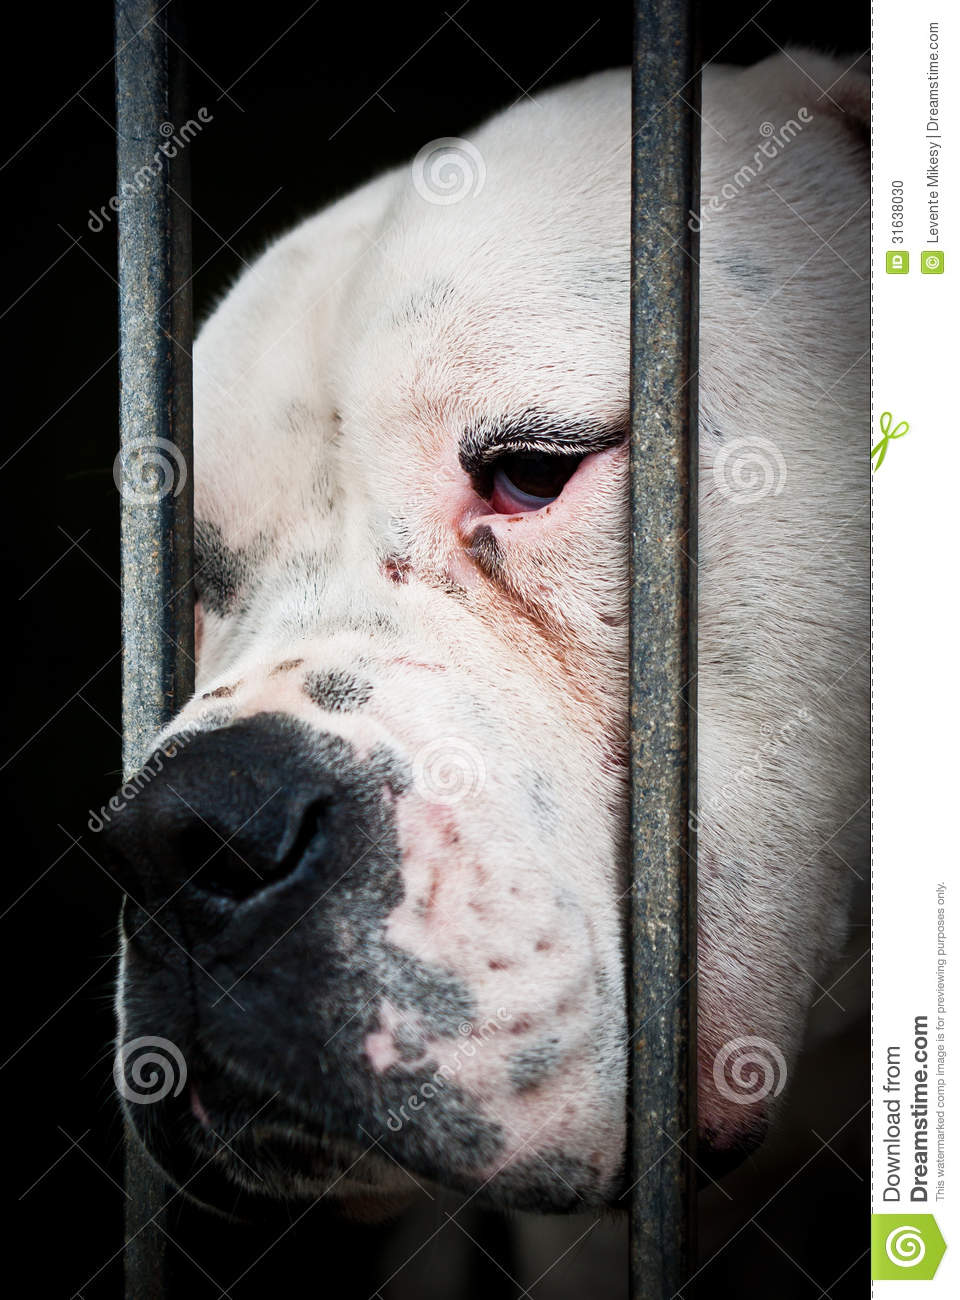 White and sad dog behind grids